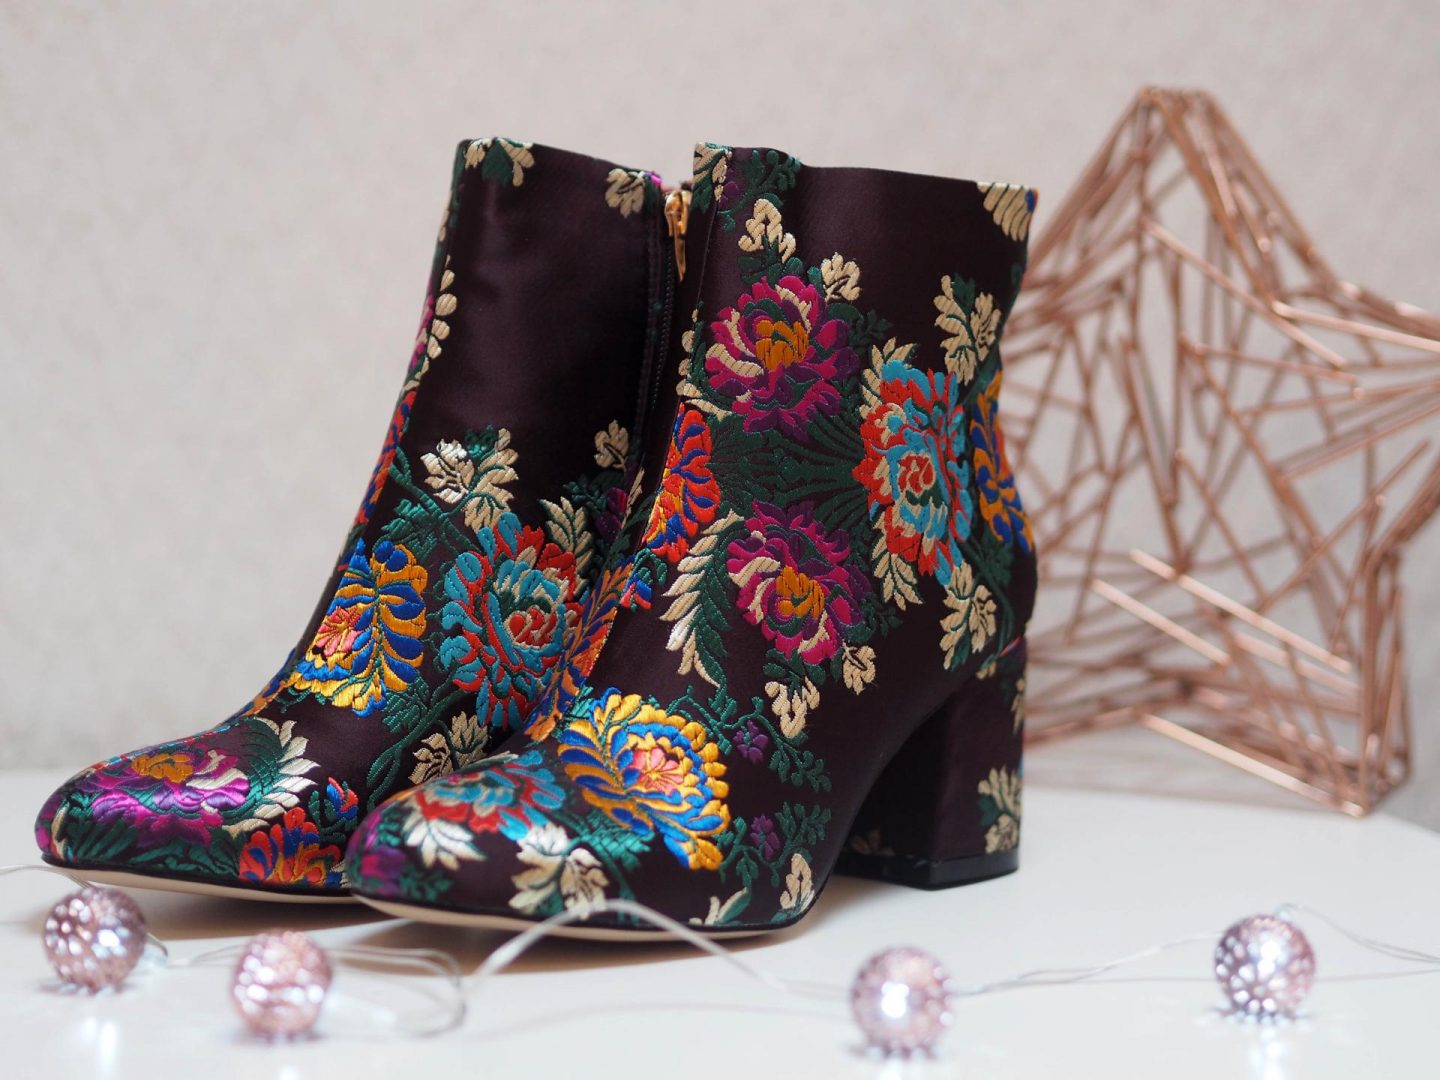 The Floral Embroidered Boots You NEED